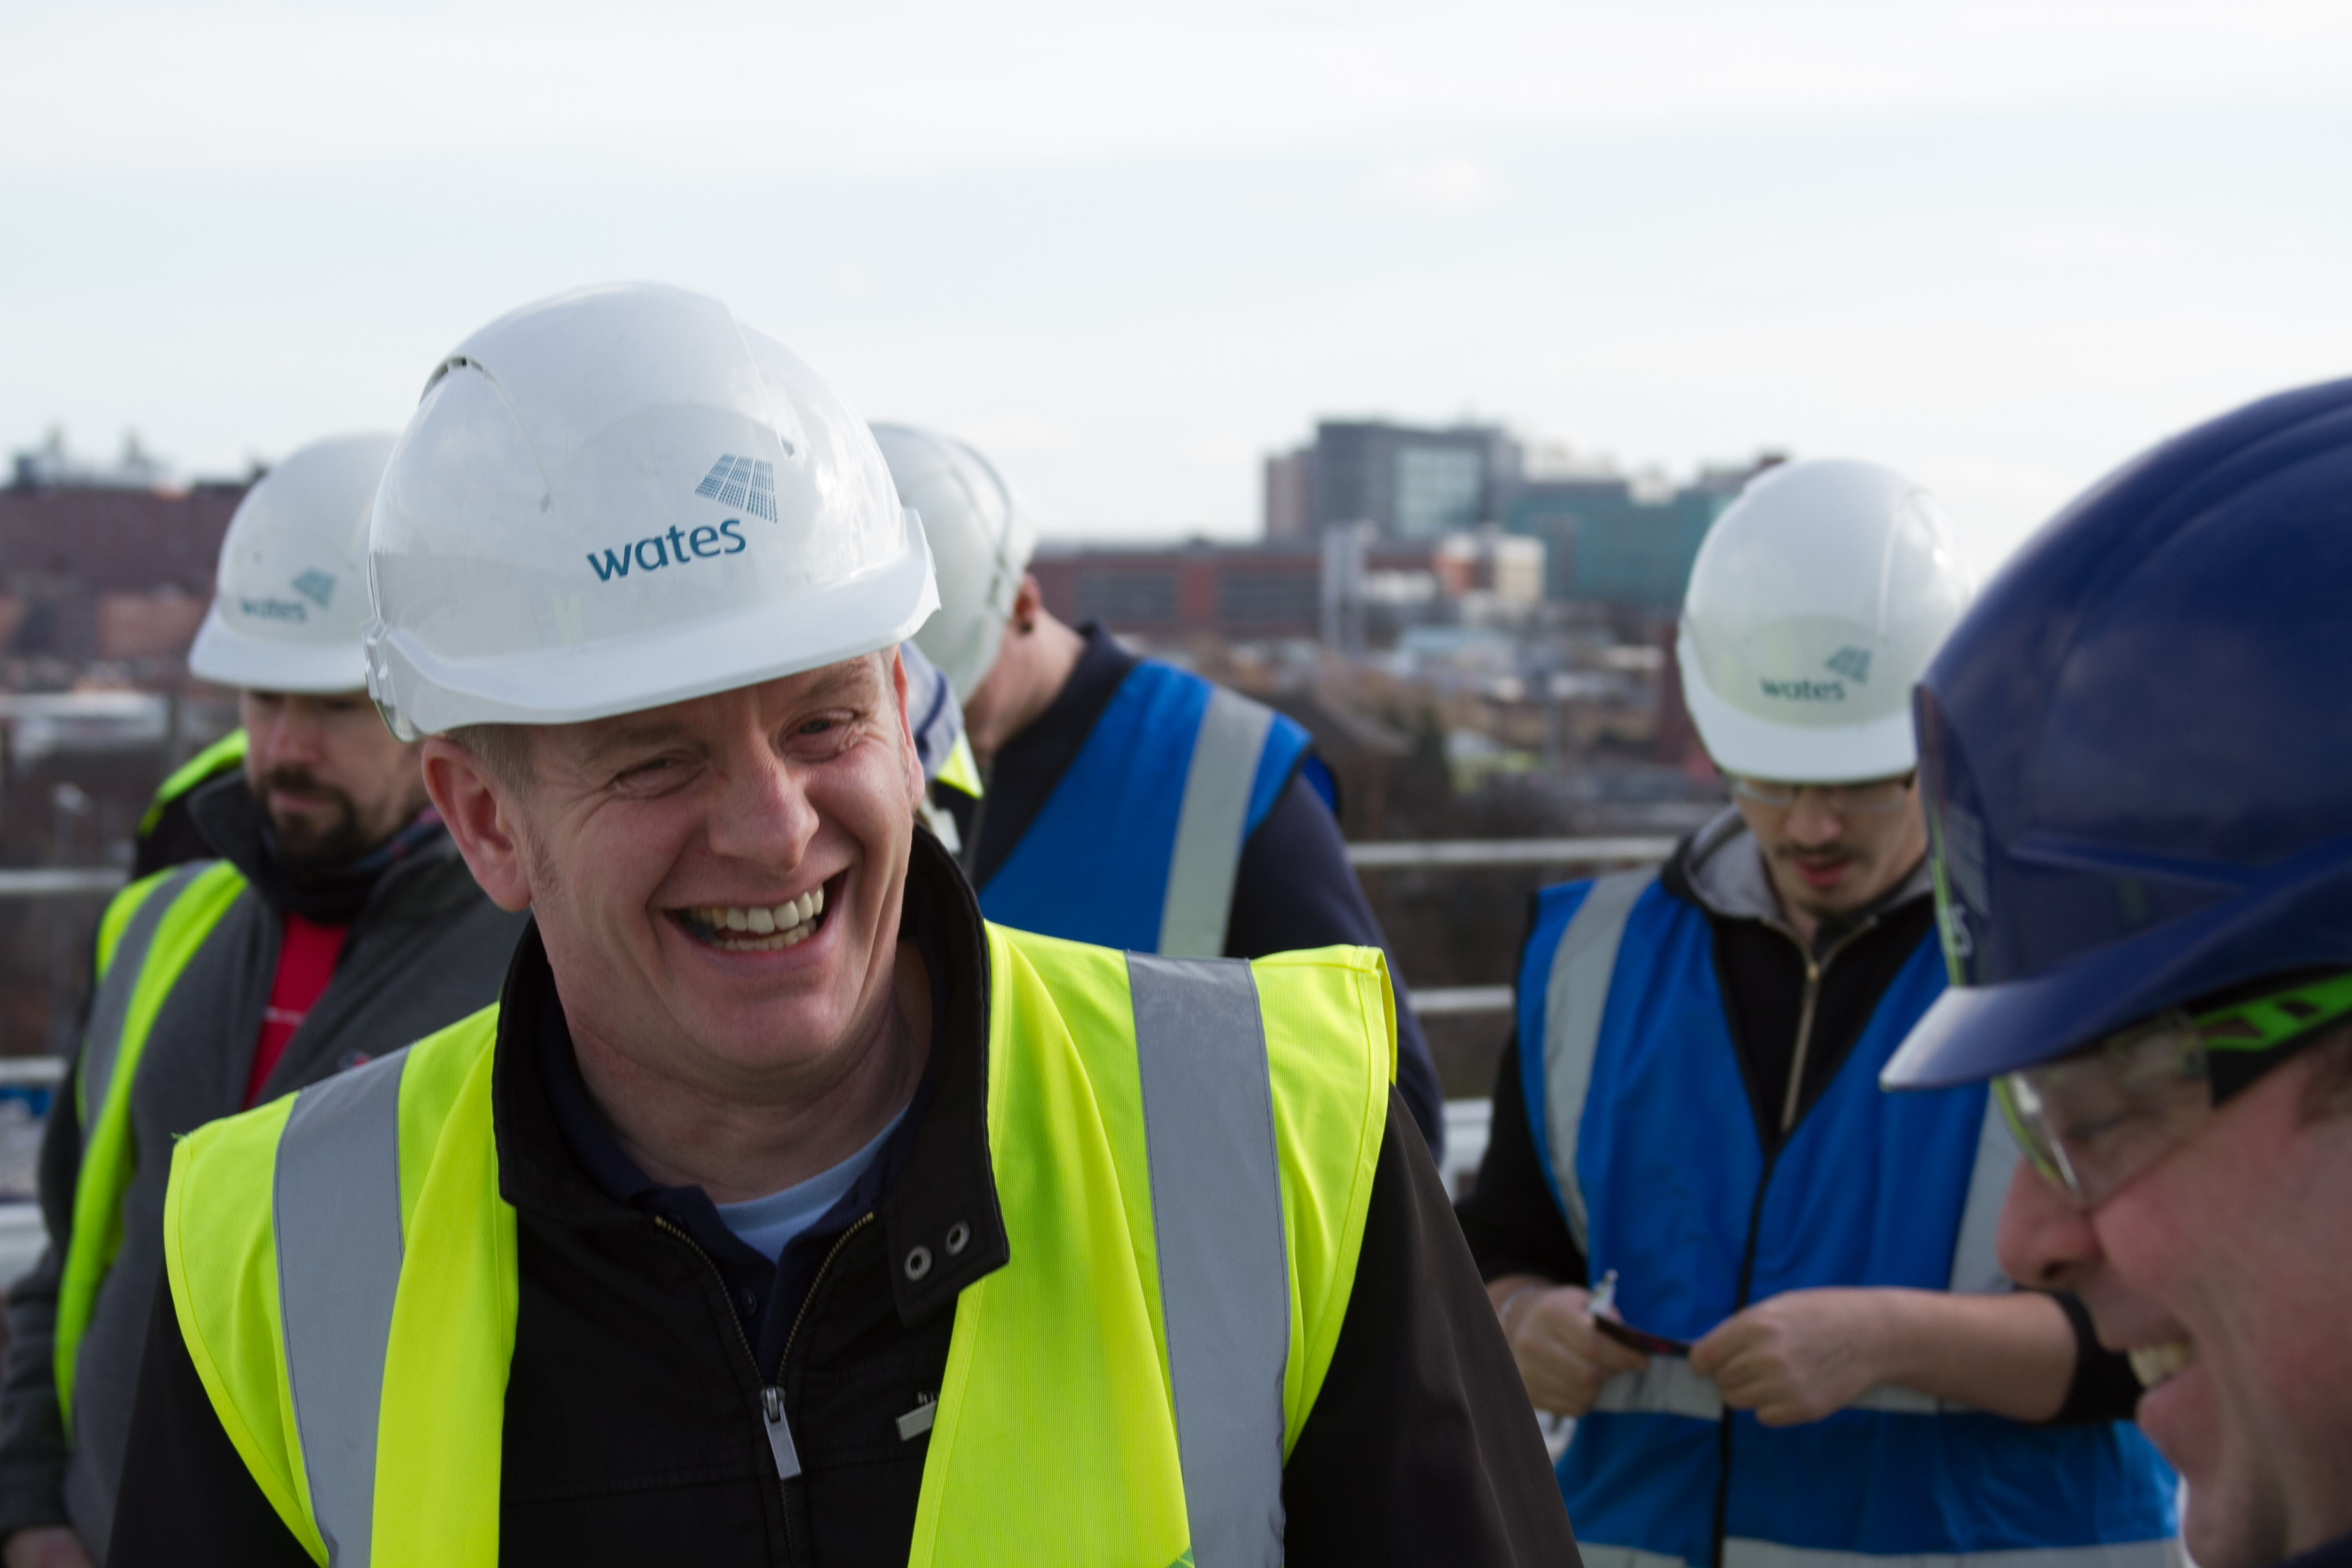 wates-open-day-leeds-event-photography-2